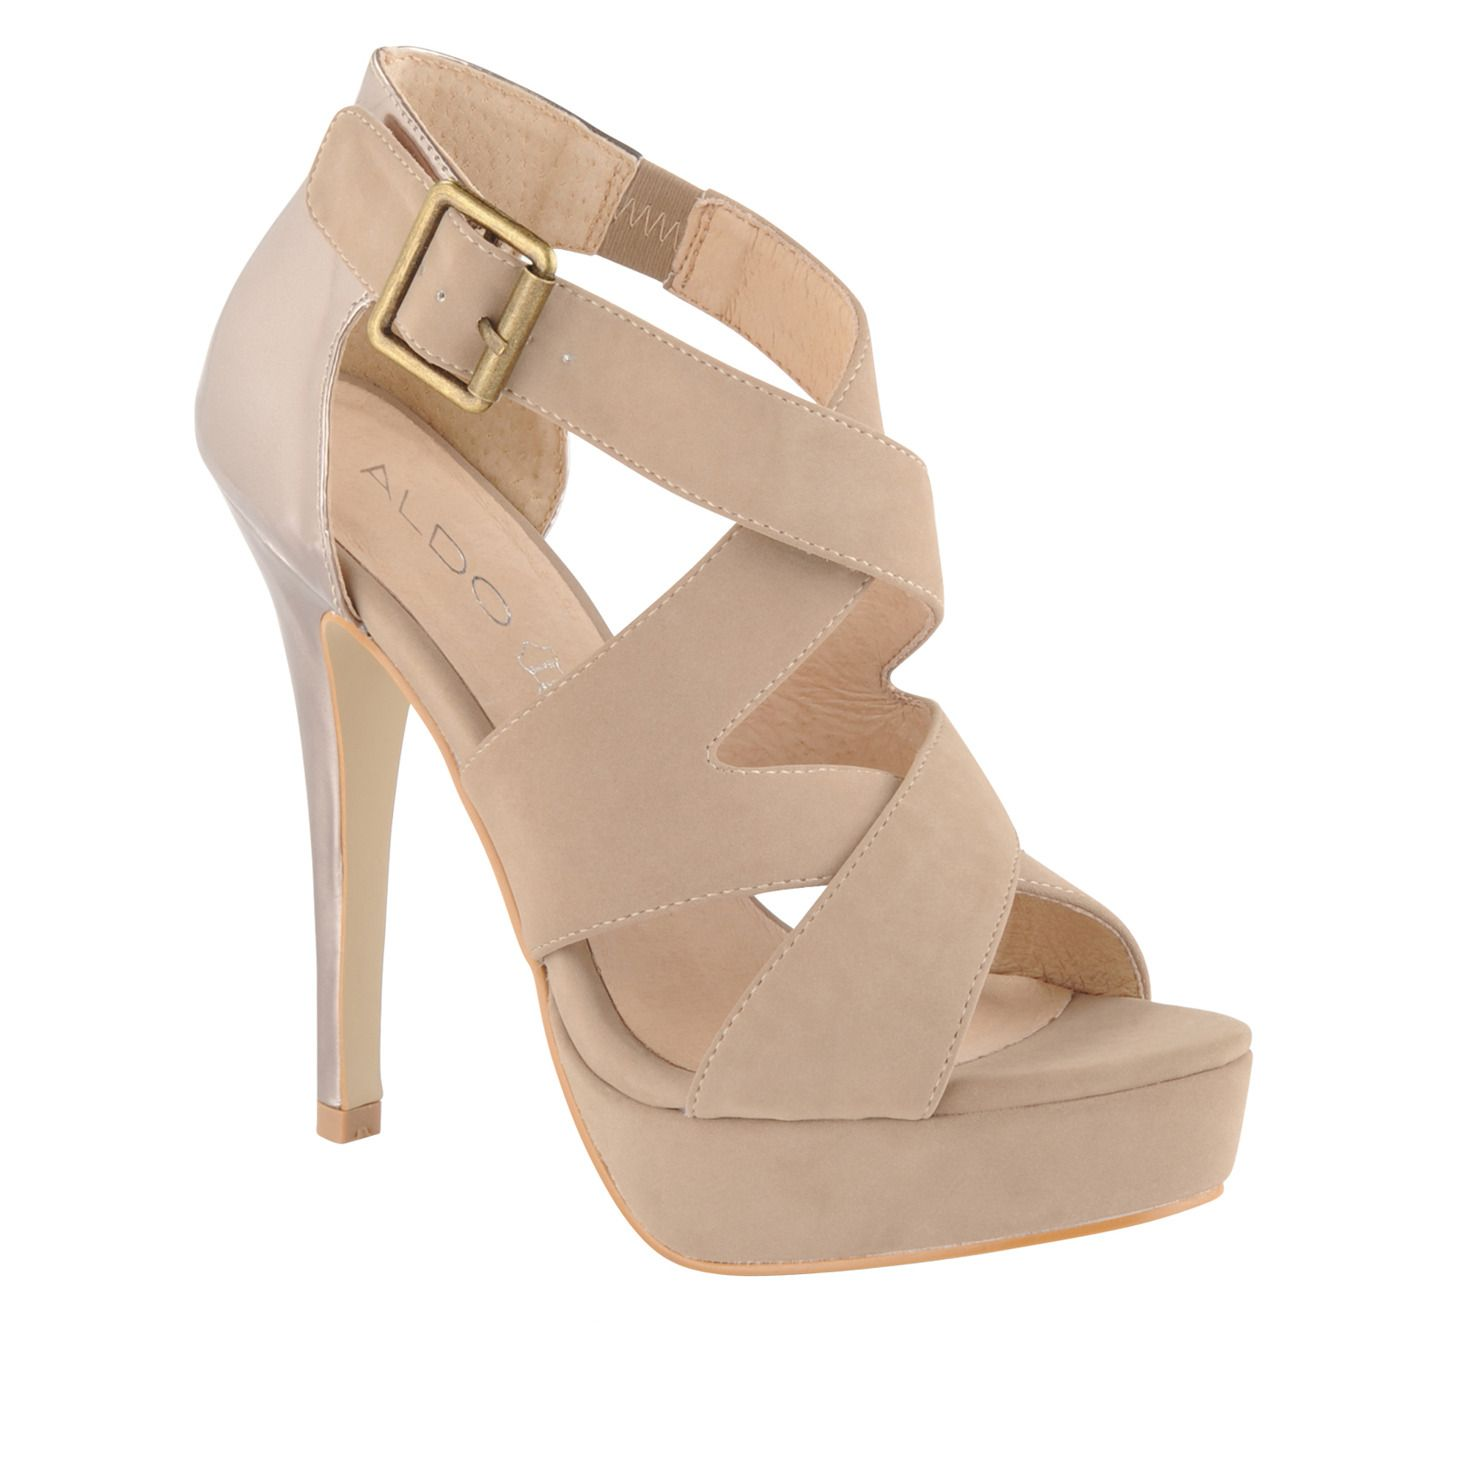 KOTUR - women's high heels sandals for sale at ALDO Shoes. | The ...